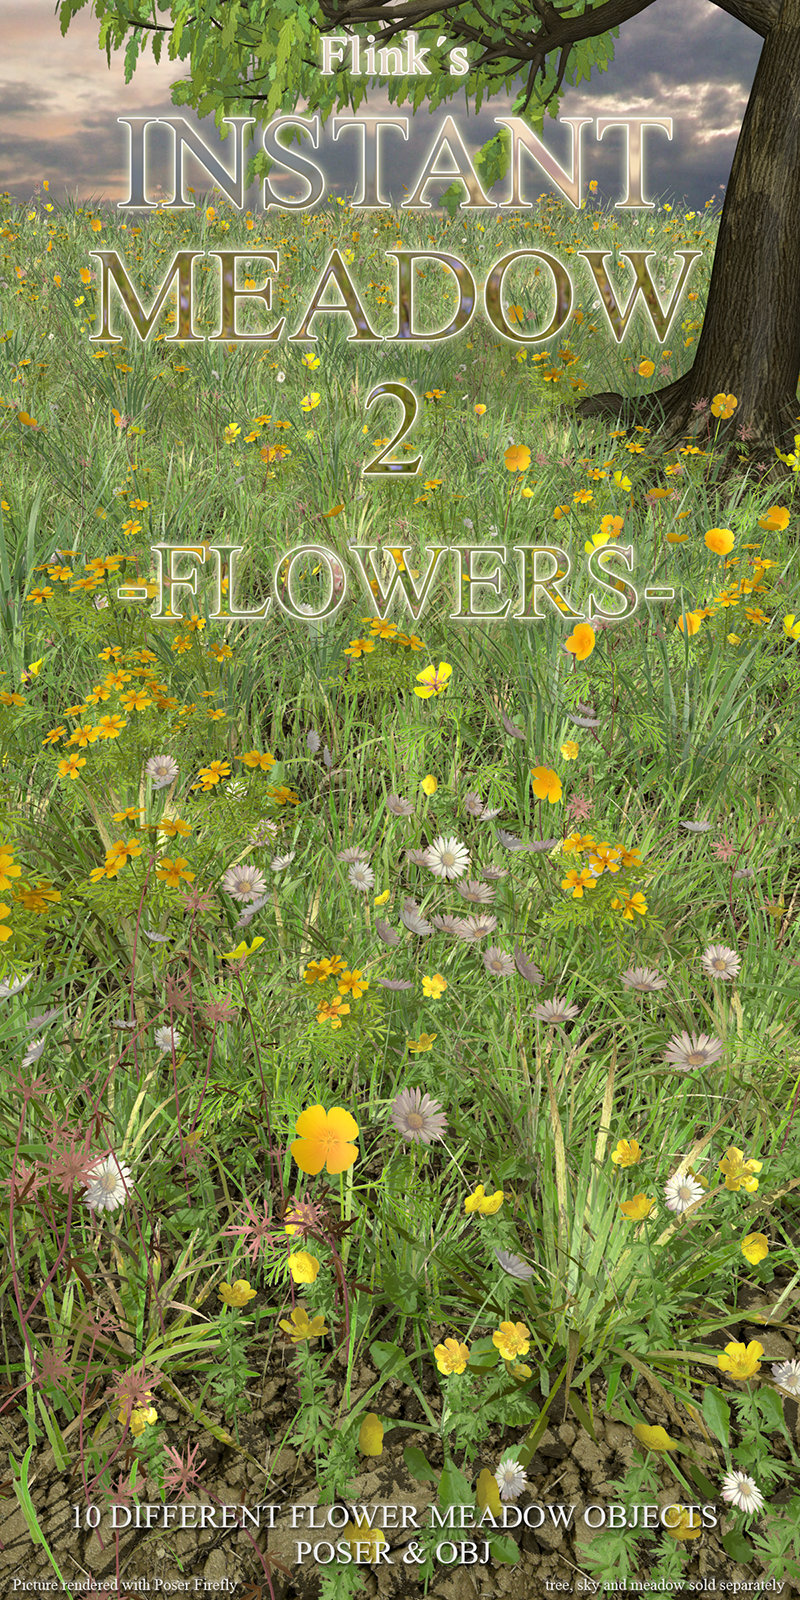 Flinks Instant Meadow 2 - Flowers